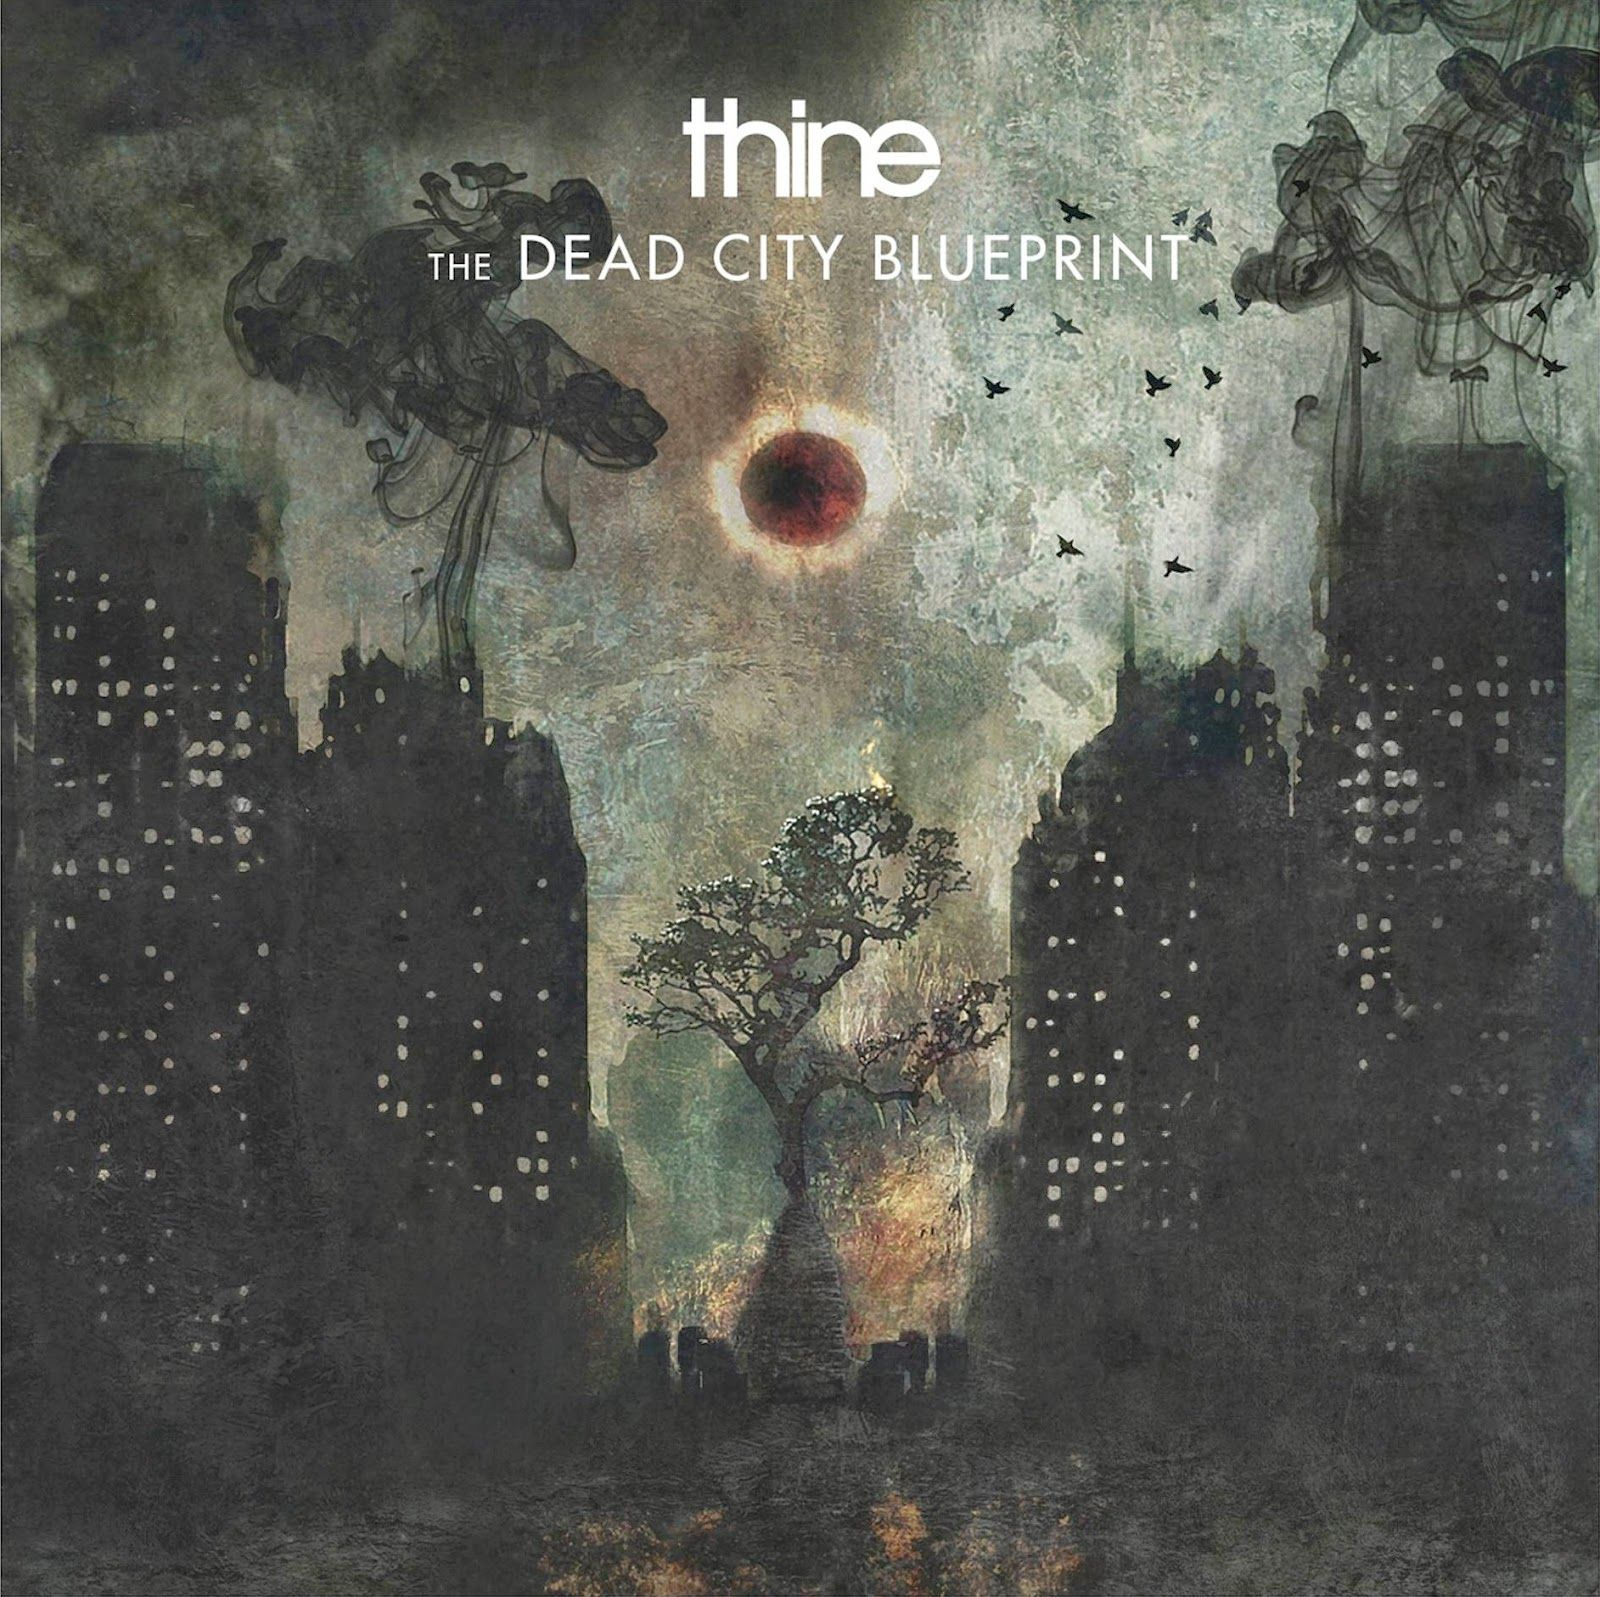 Thines new album the dead city blueprint premieres with the song thines new album the dead city blueprint premieres with the song out of your mind and into the void on soundcloud thines sound is a nice mix from malvernweather